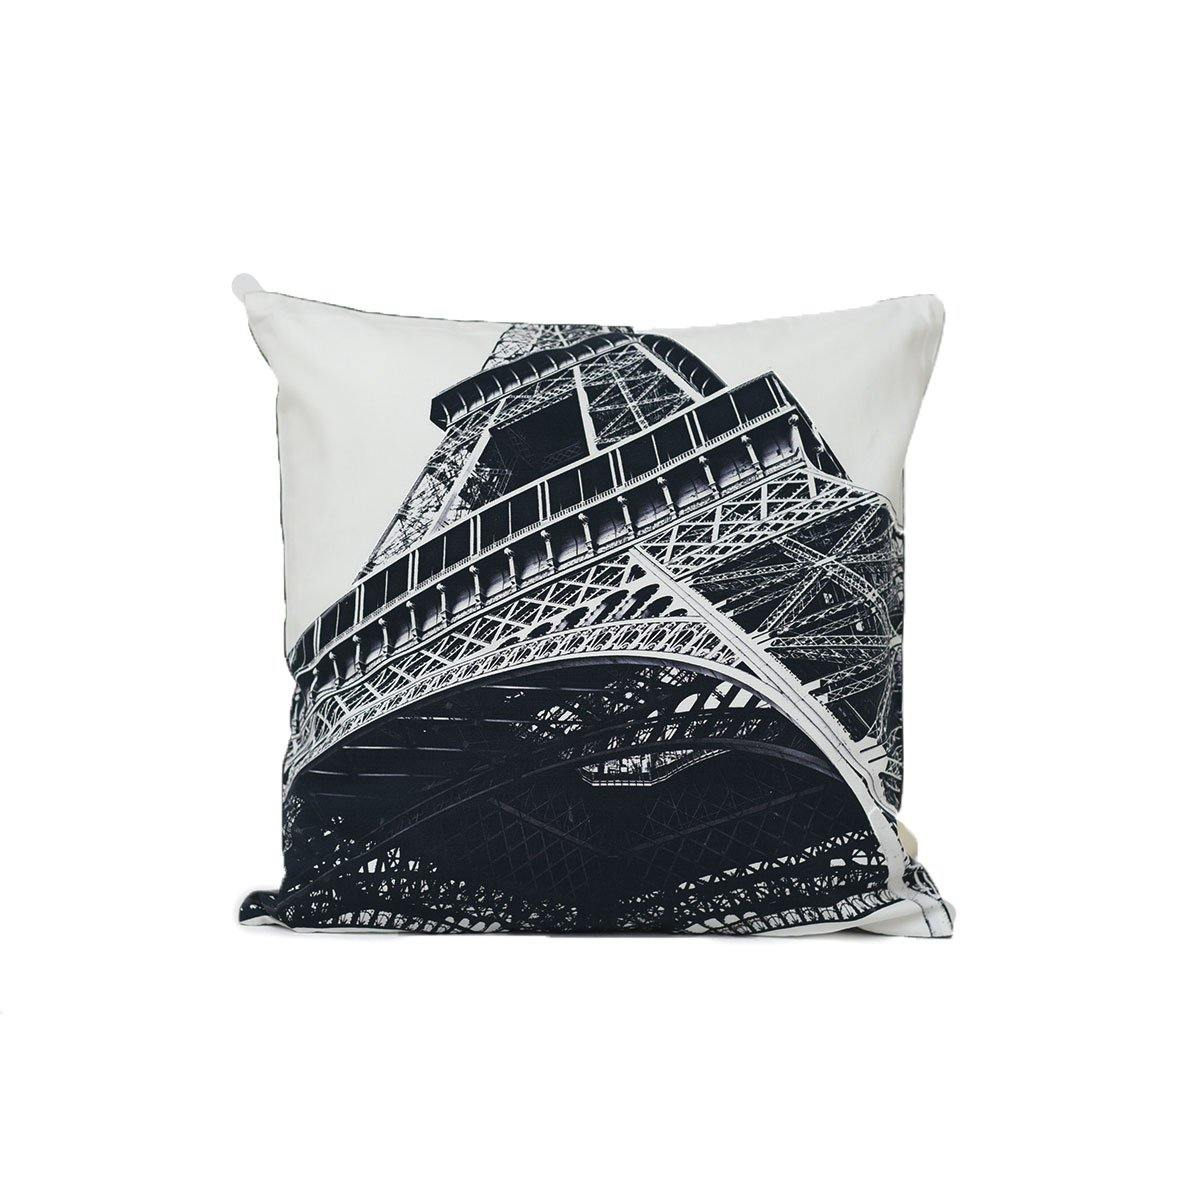 Eiffel Tower Black Digital Cushions